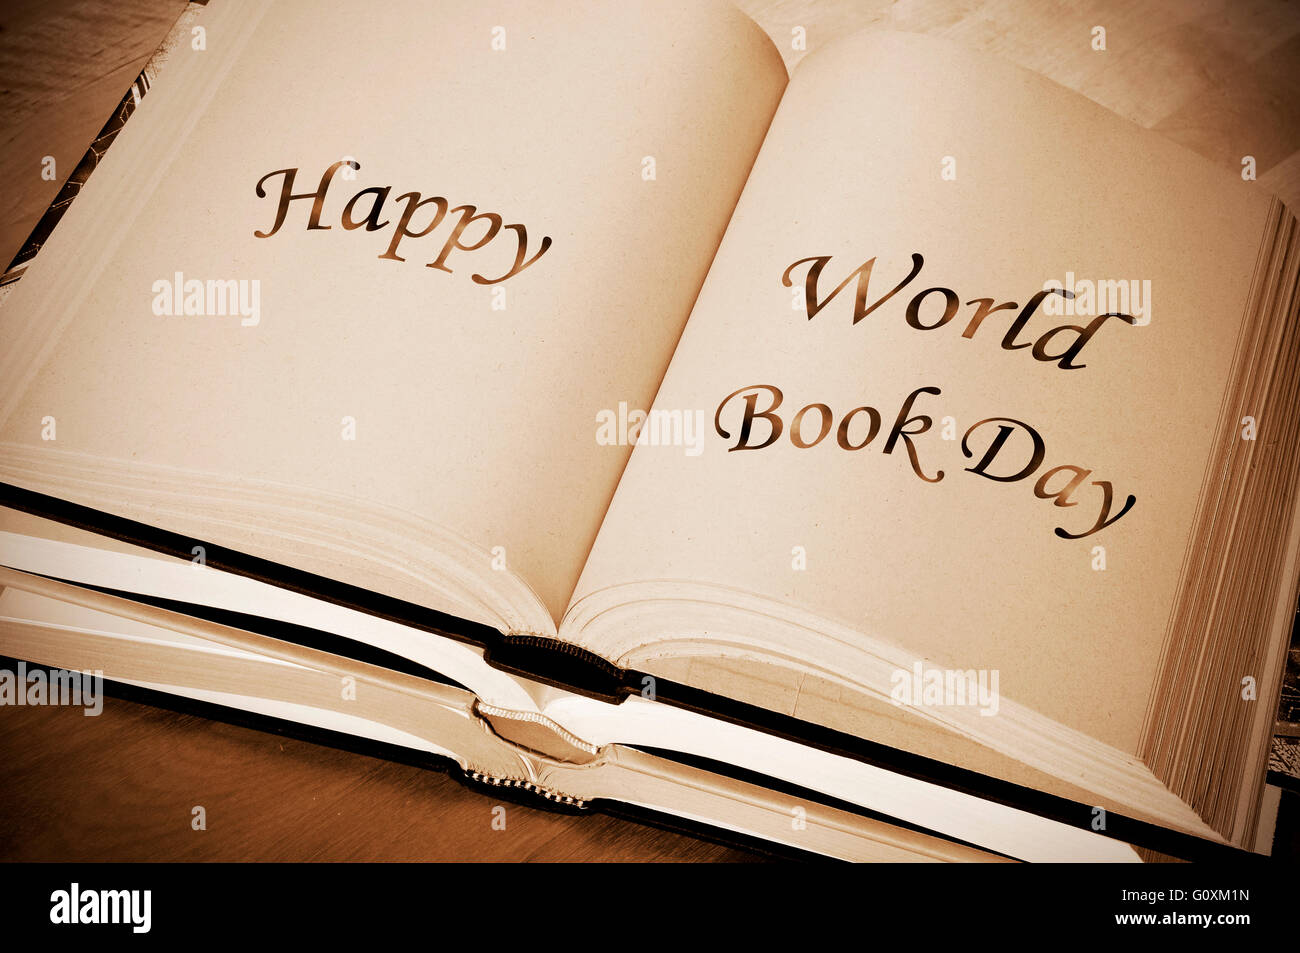 sentence happy world book day, celebrated each year on april 23, written on an open book - Stock Image